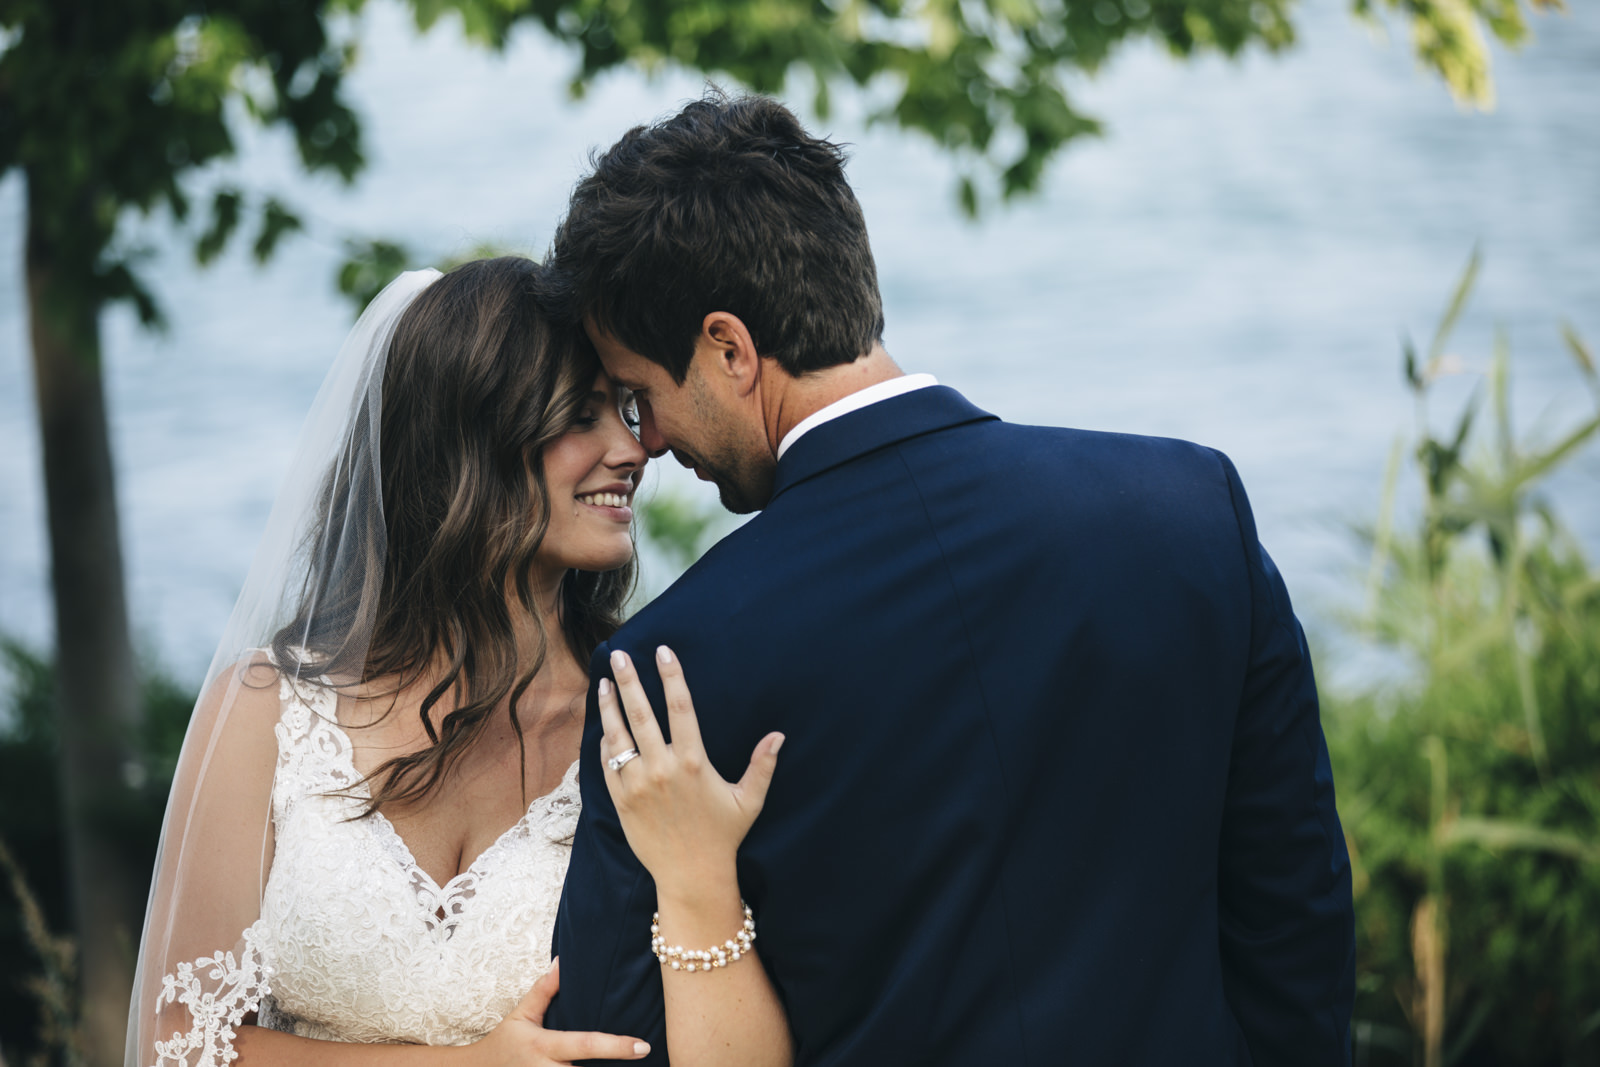 Bride and groom go head to head and smile for a picture near the lake in Michigan.